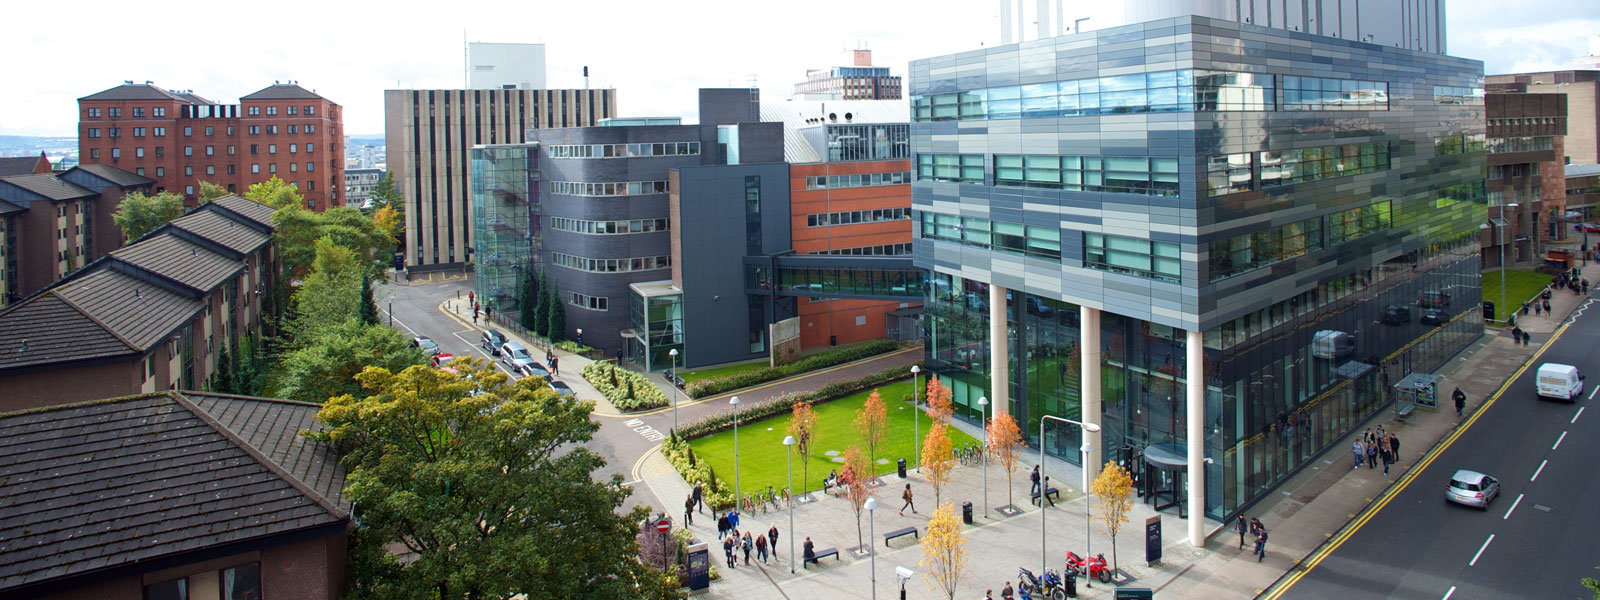 University of Strathclyde, ISC